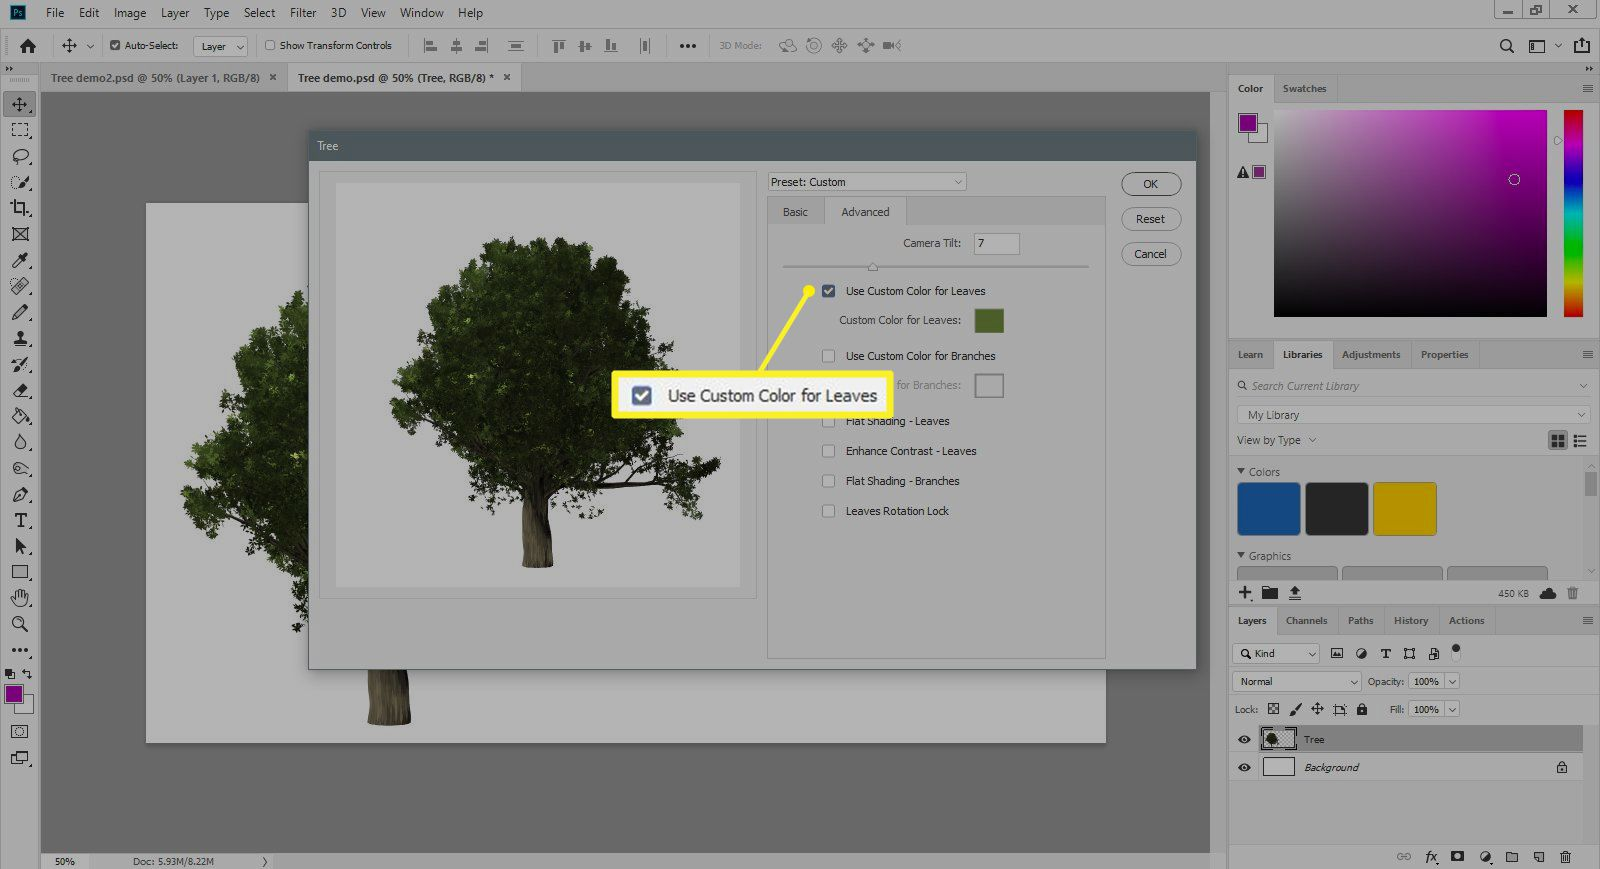 The Tree Filter dialogue Advanced tab with Use Custom Color for Leaves selected